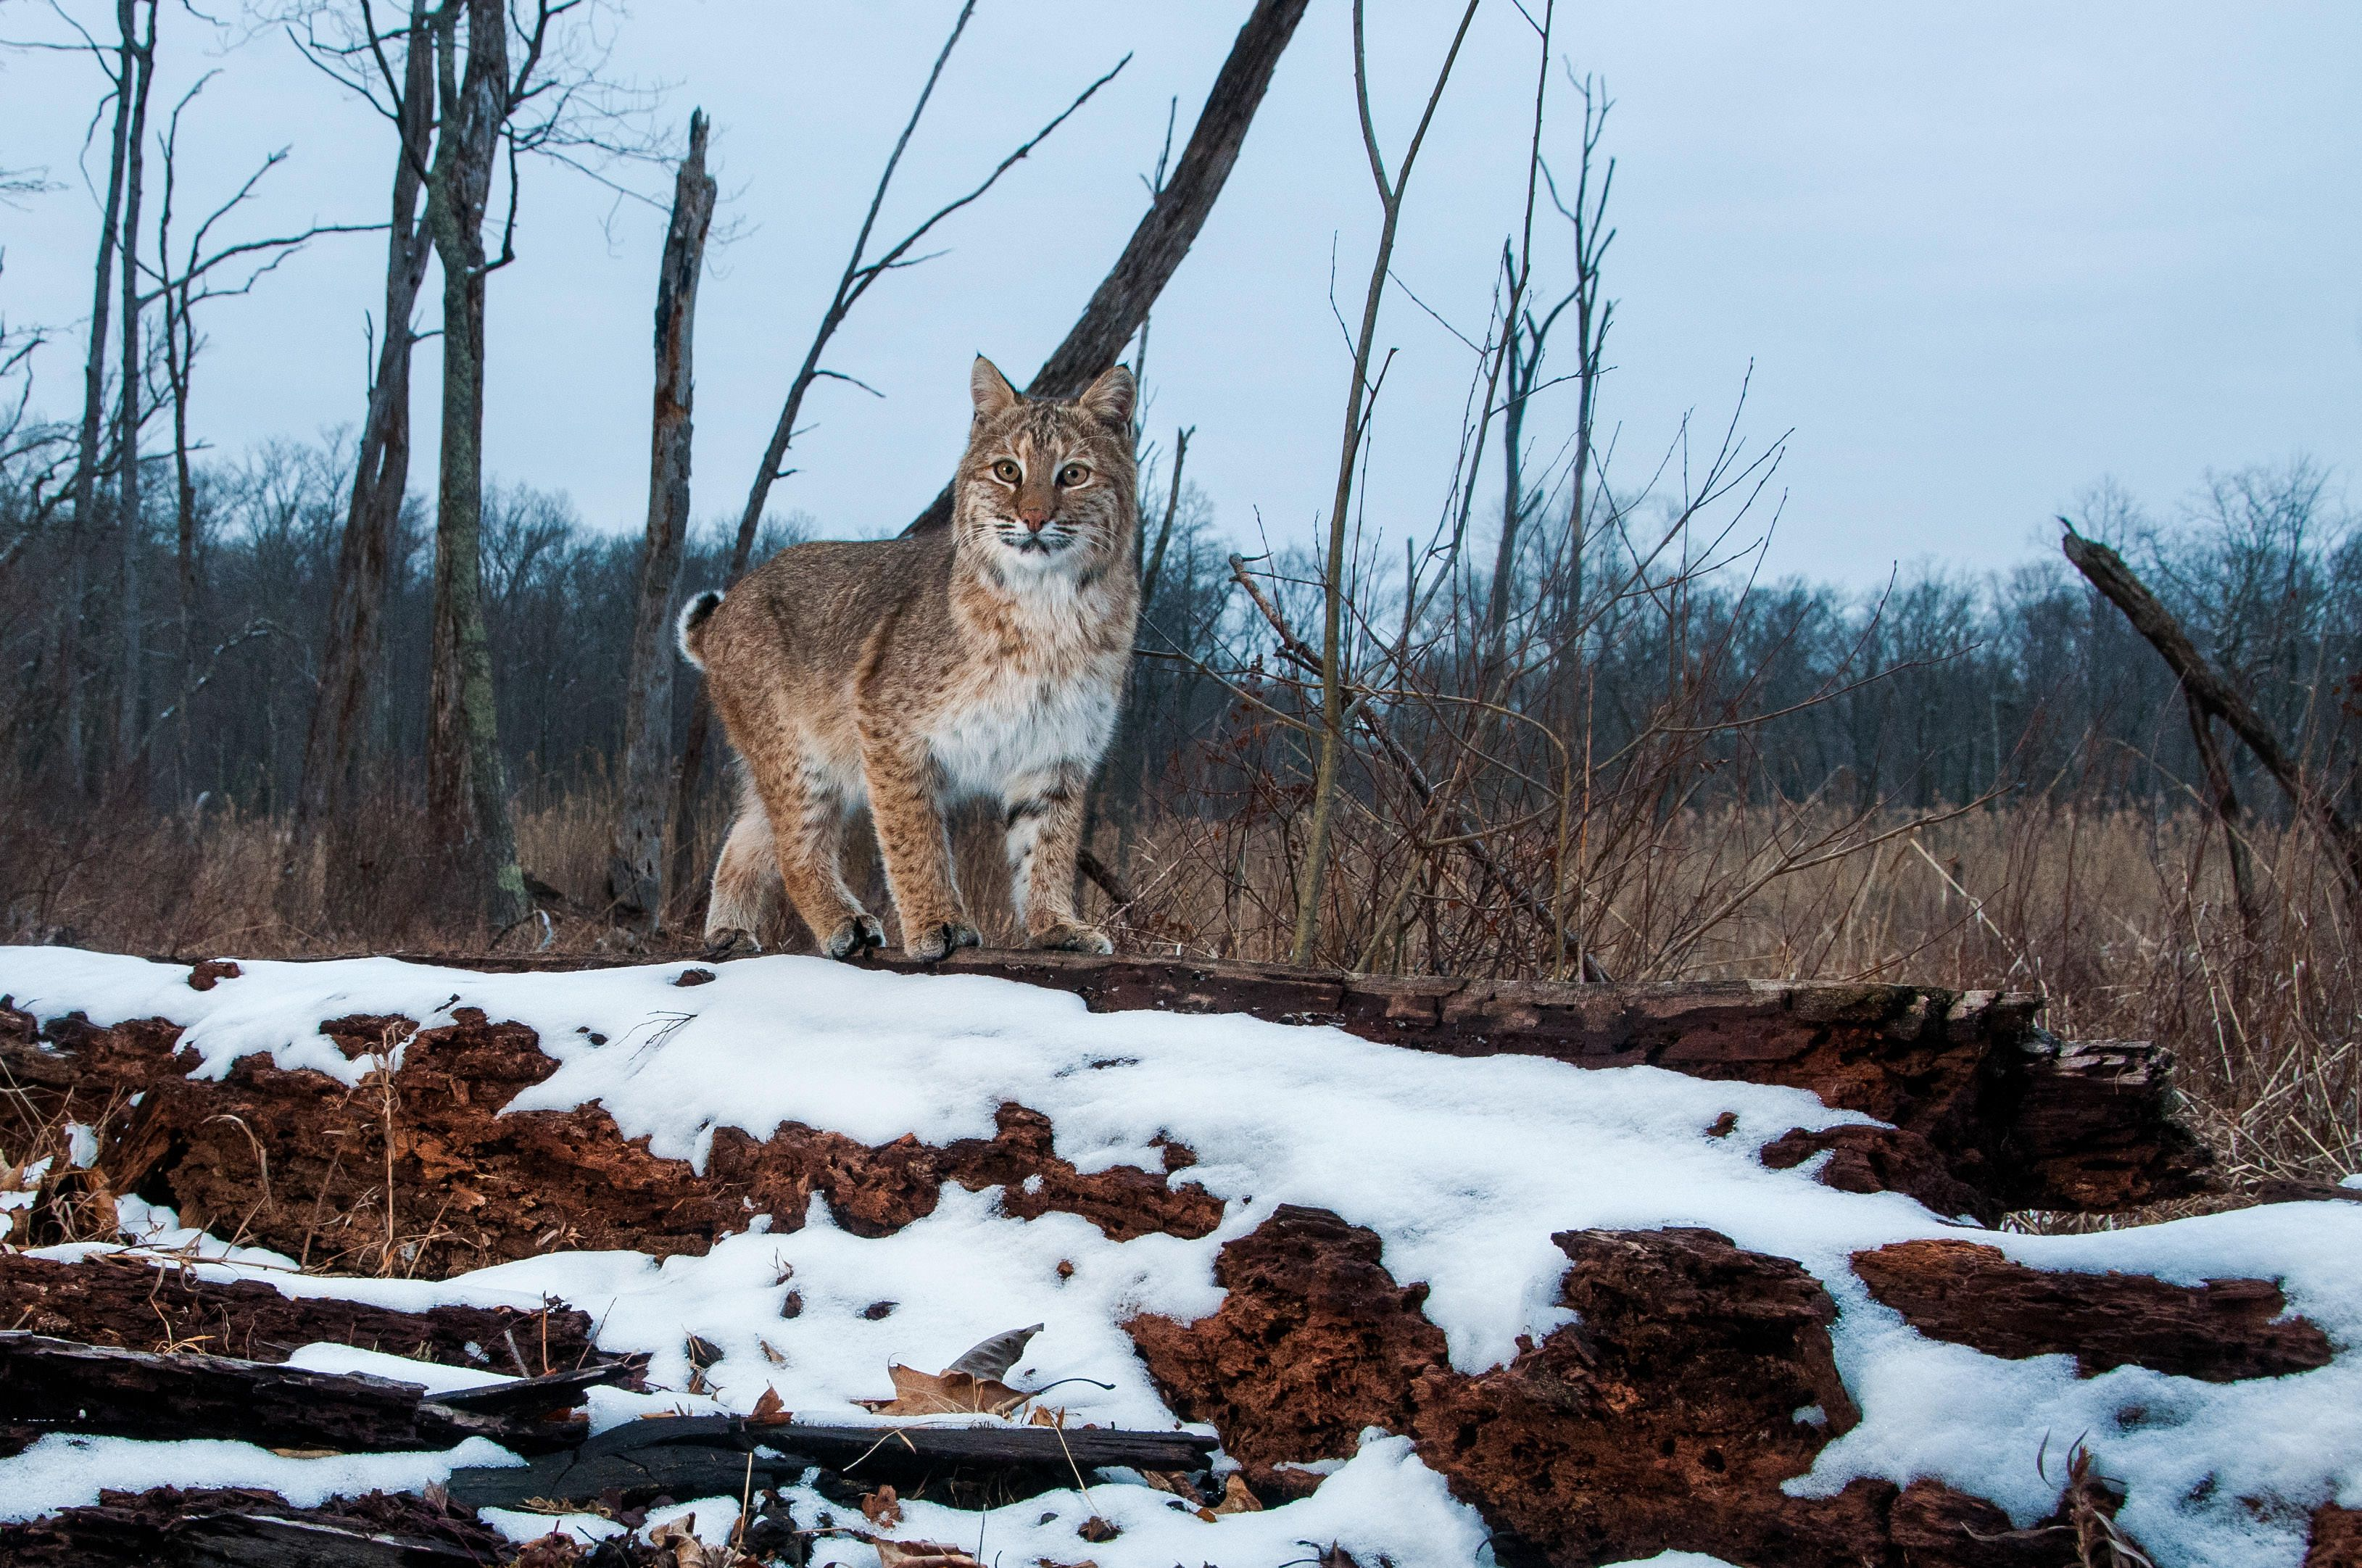 bobcat looking at camera standing on snow-covered ground